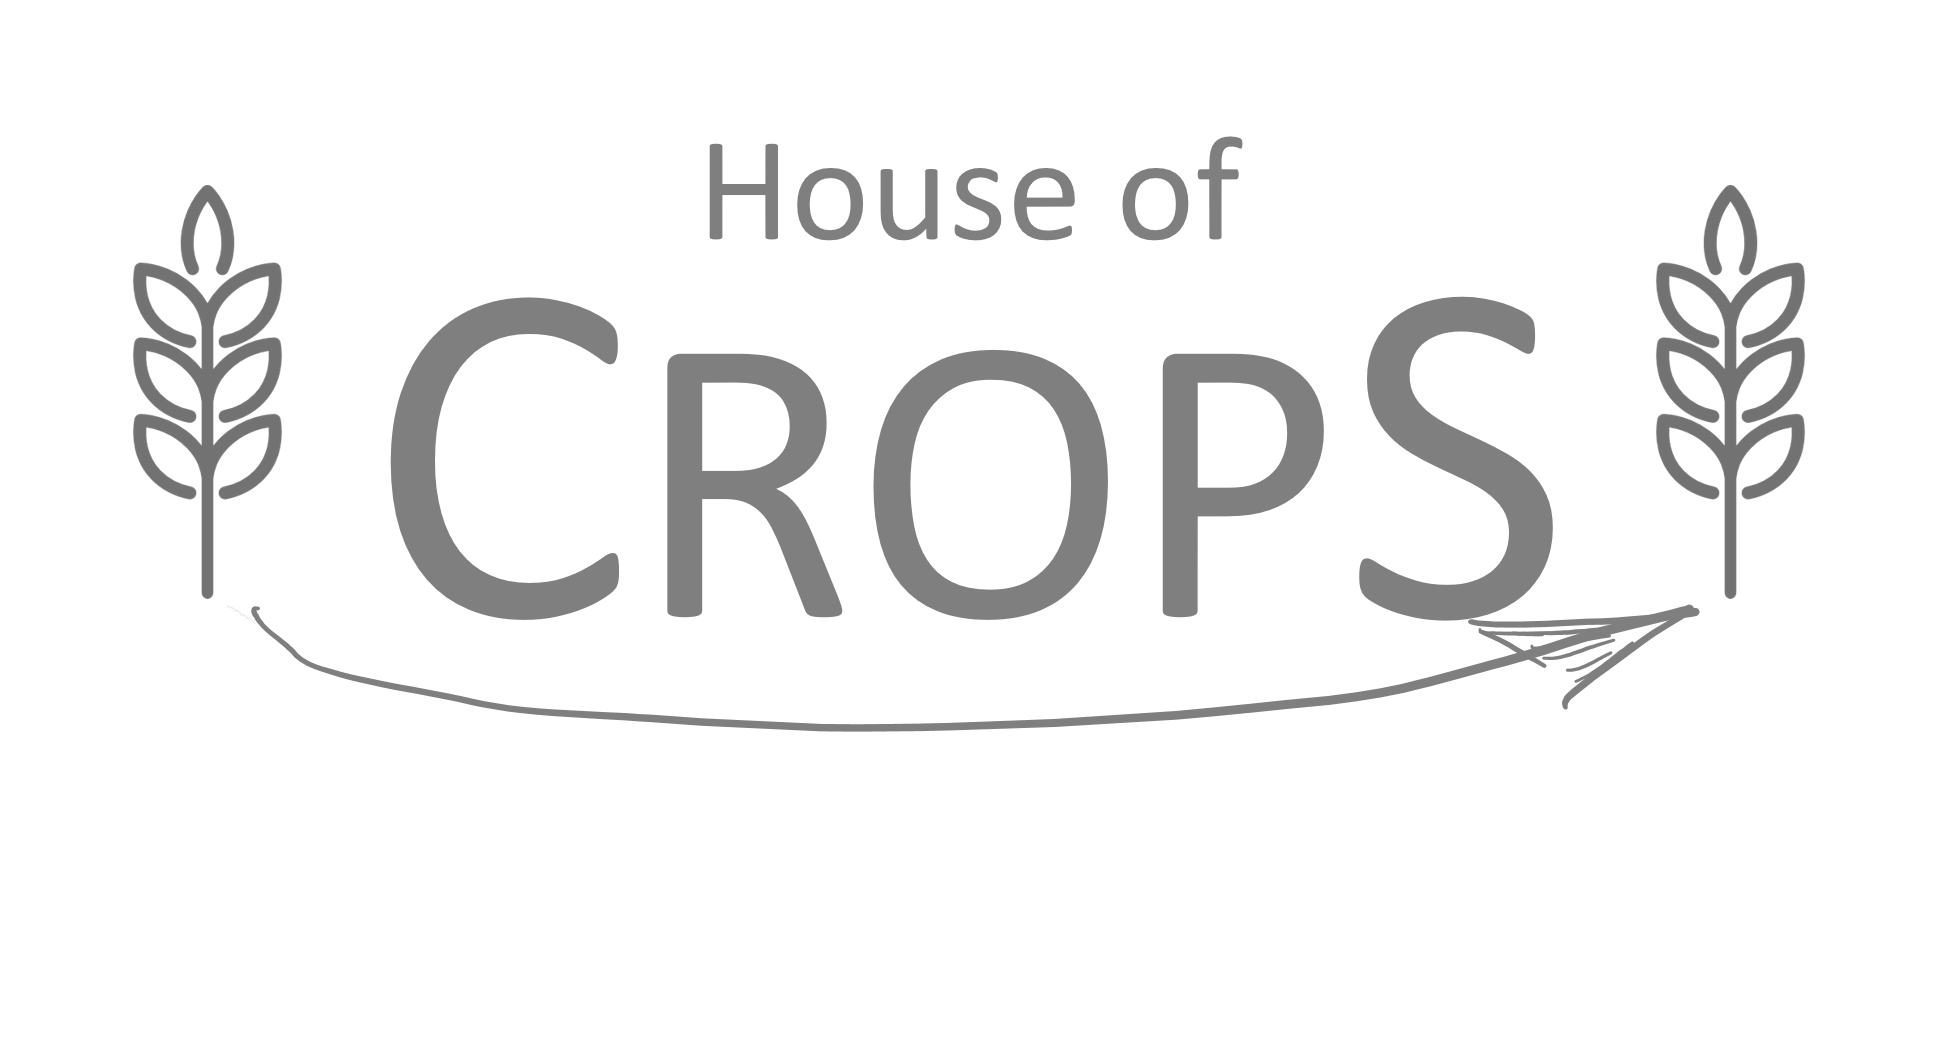 House of Crops